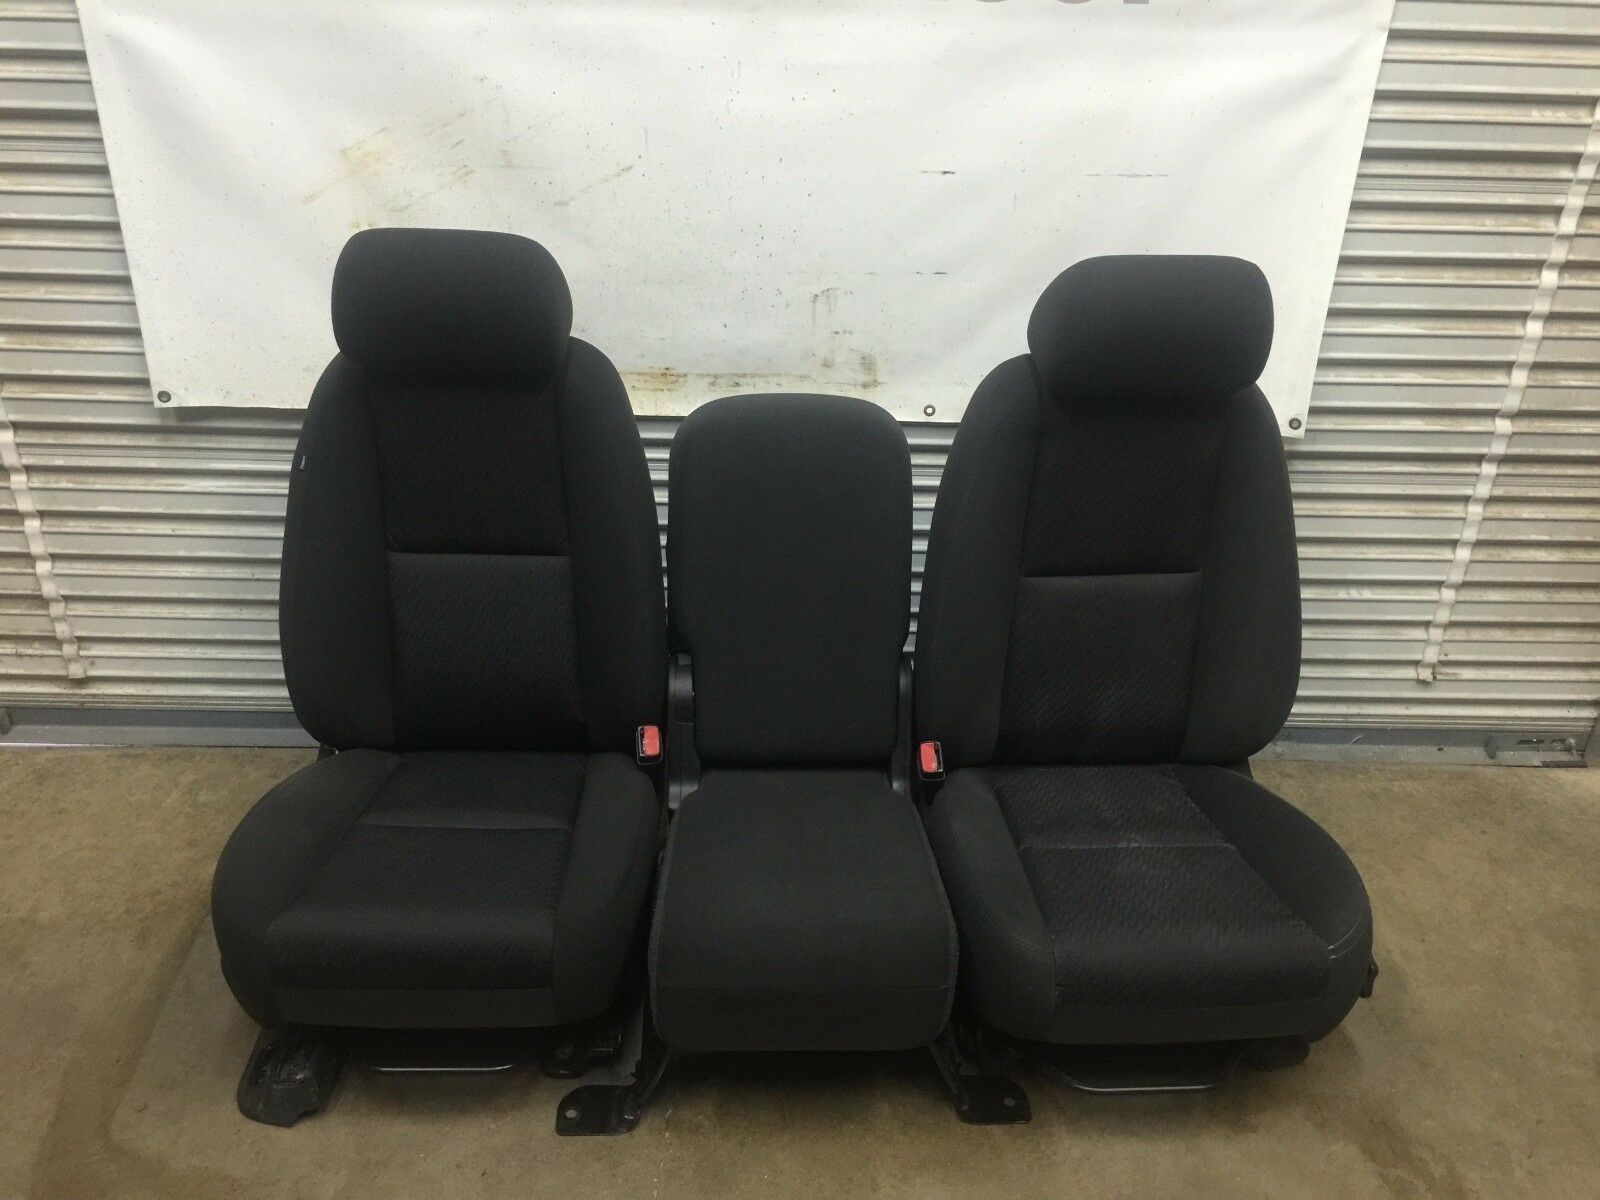 used chevrolet tahoe seats for sale. Black Bedroom Furniture Sets. Home Design Ideas